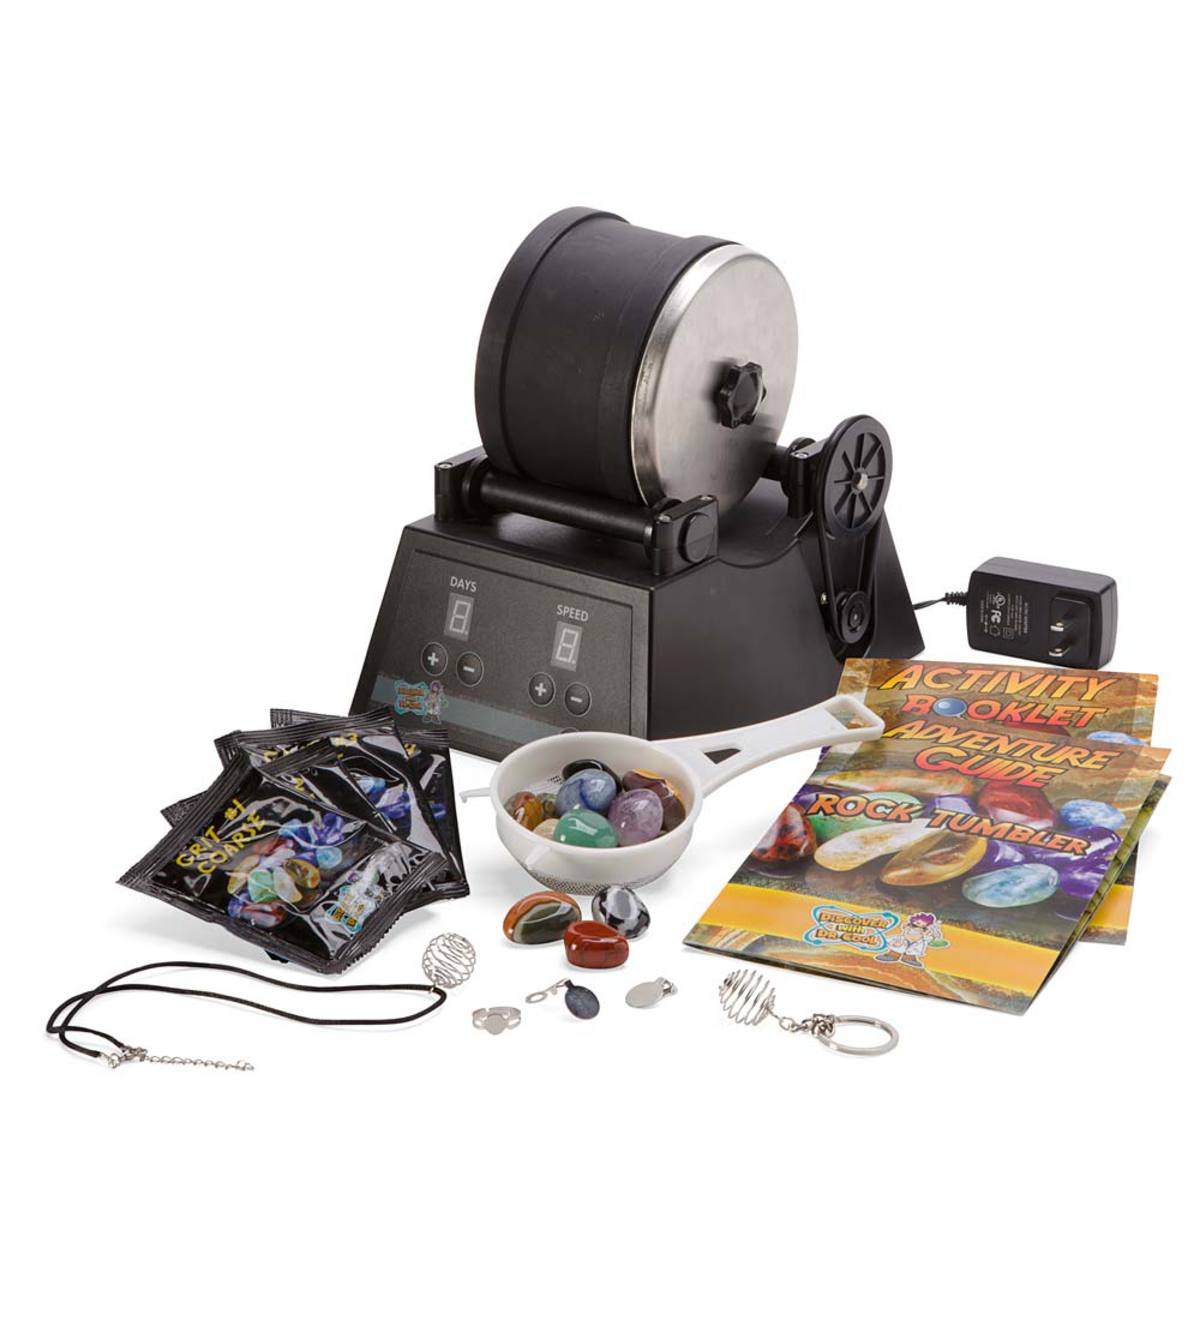 Rock Tumbler Pro Rock Polishing Machine with Assorted Gemstones, Polishing Grit, and Jewelry Fastenings